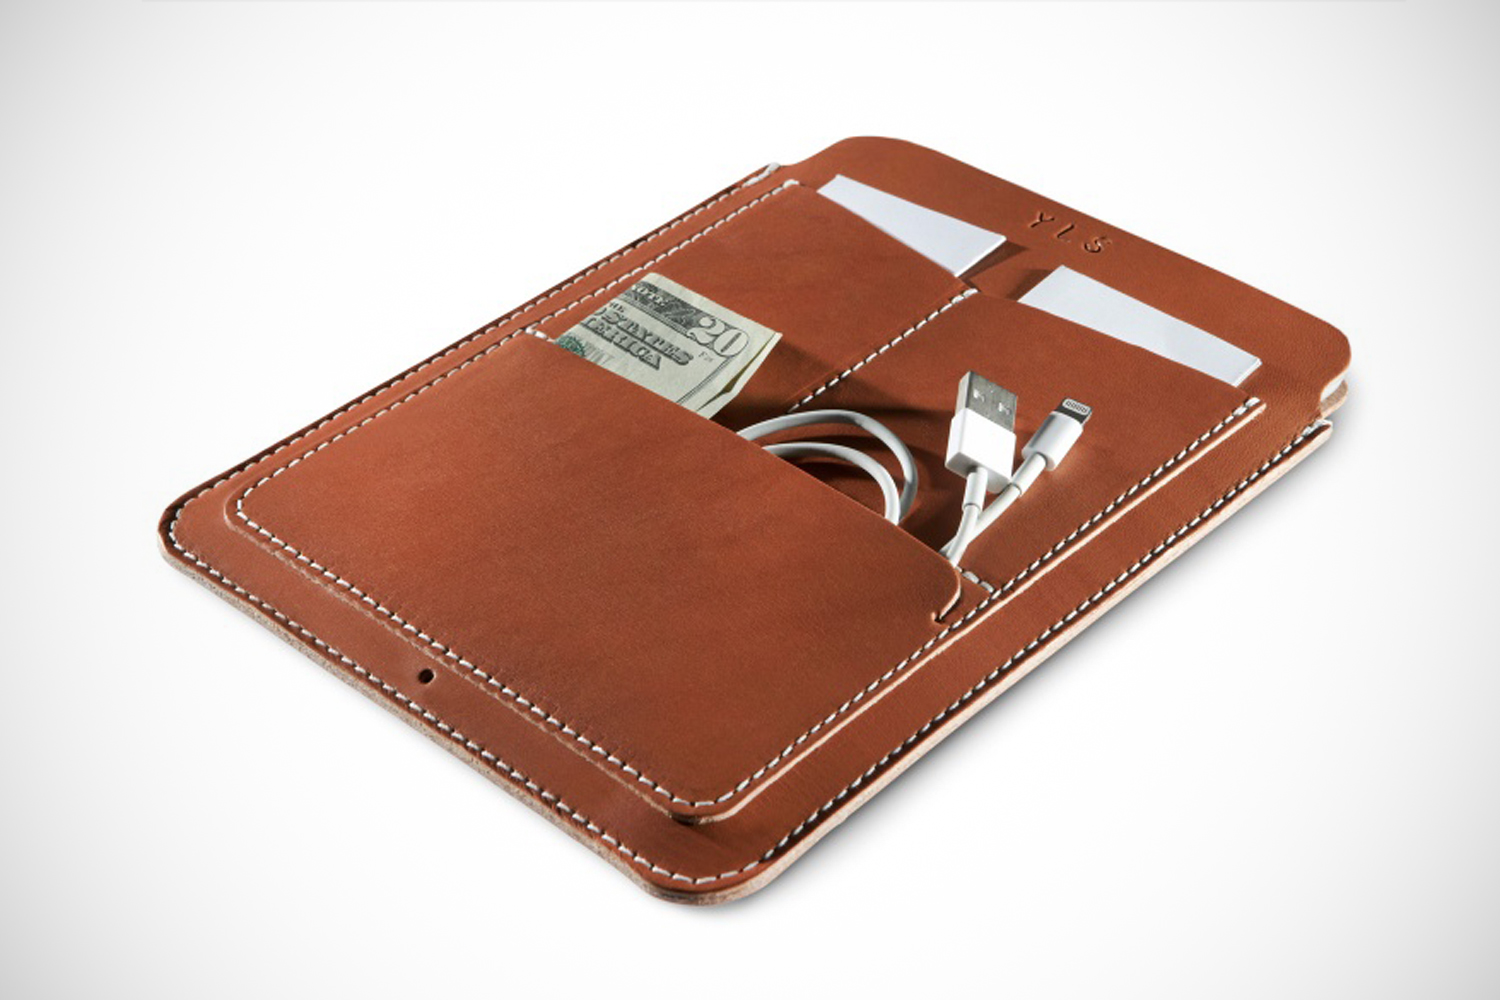 9 Handsome Leather Products For Tech Gear - HEY GENTS